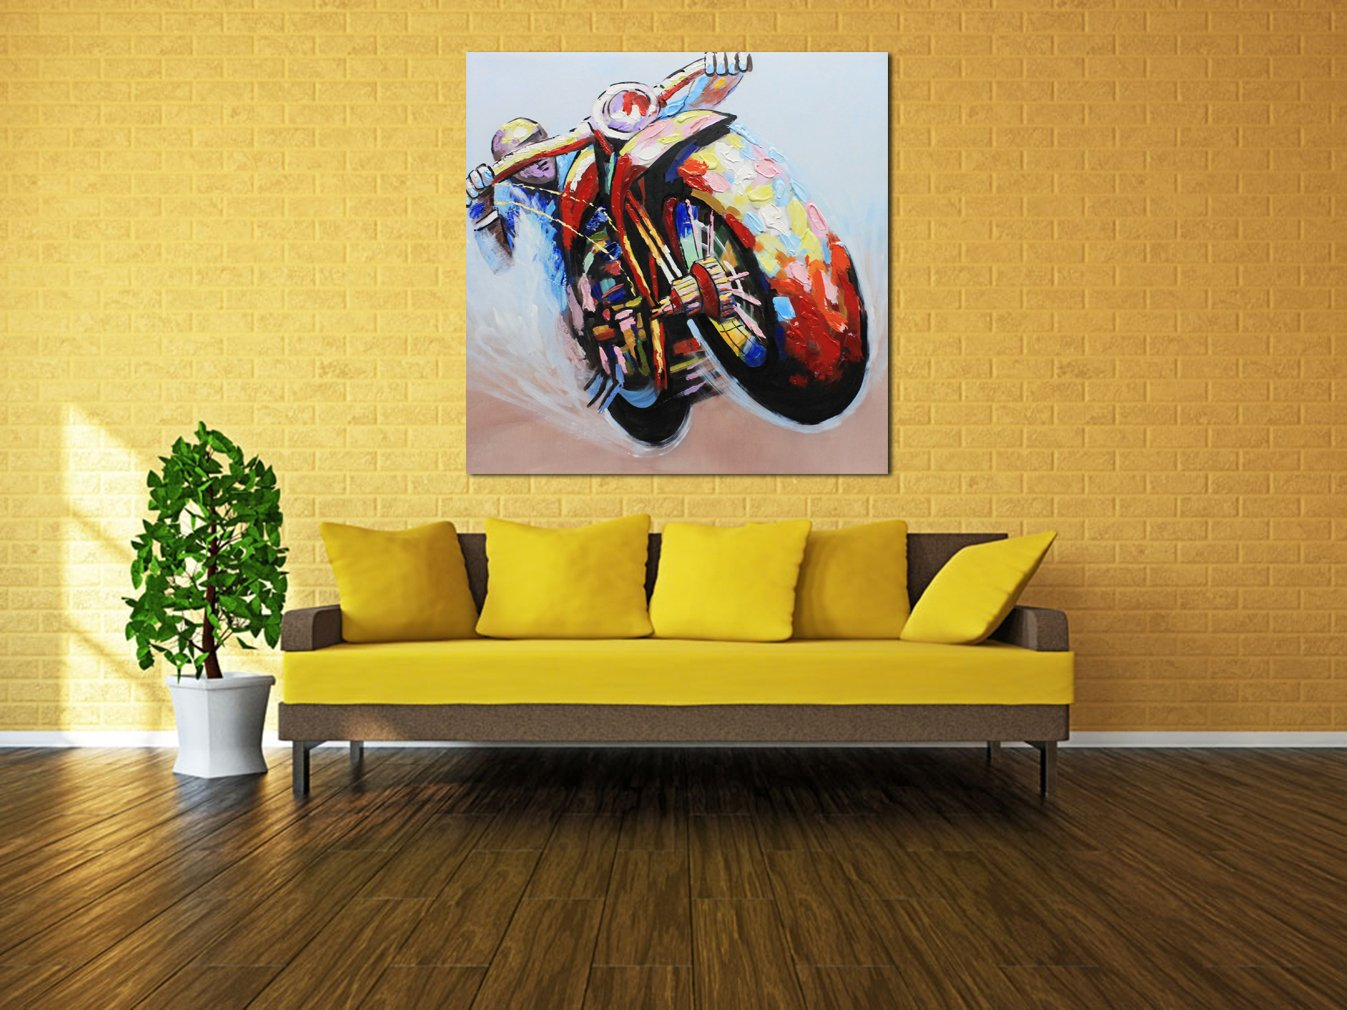 Amazon.com: Muzagroo Art Oil Painting Riding a Motorcycle Hand ...